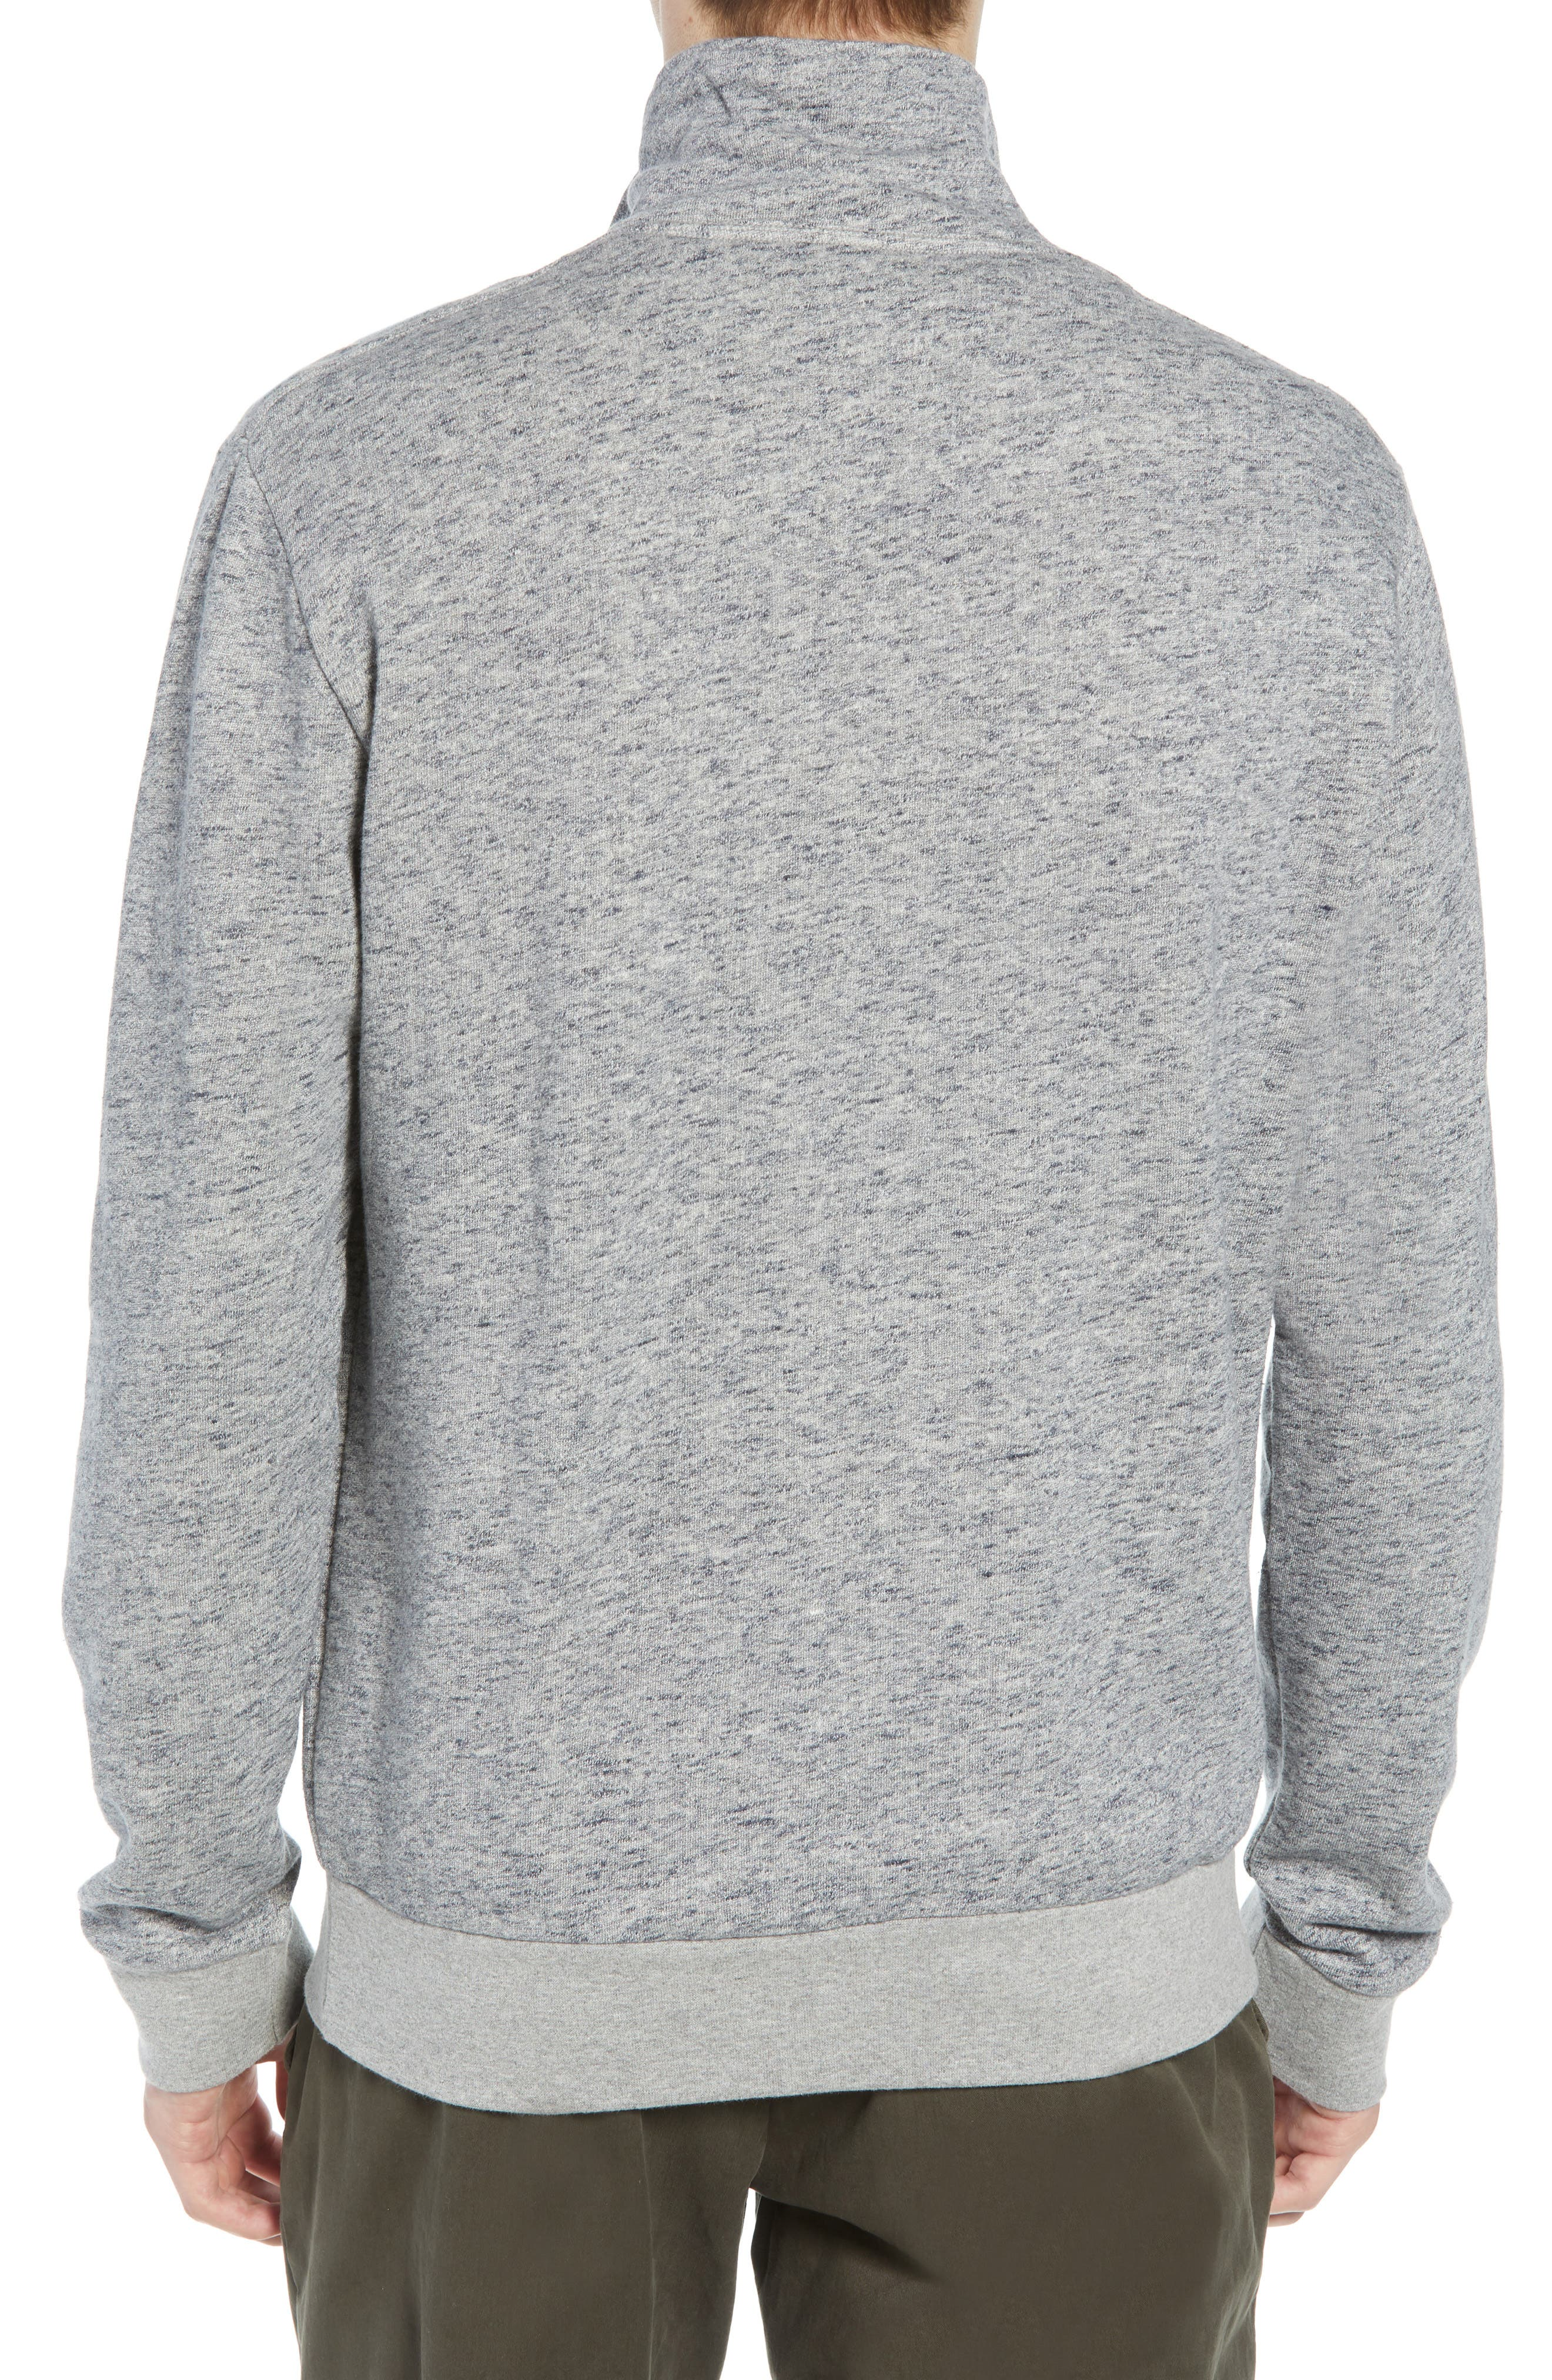 Winning Quarter Zip Regular Fit Sweatshirt,                             Alternate thumbnail 2, color,                             GREY MOULINE